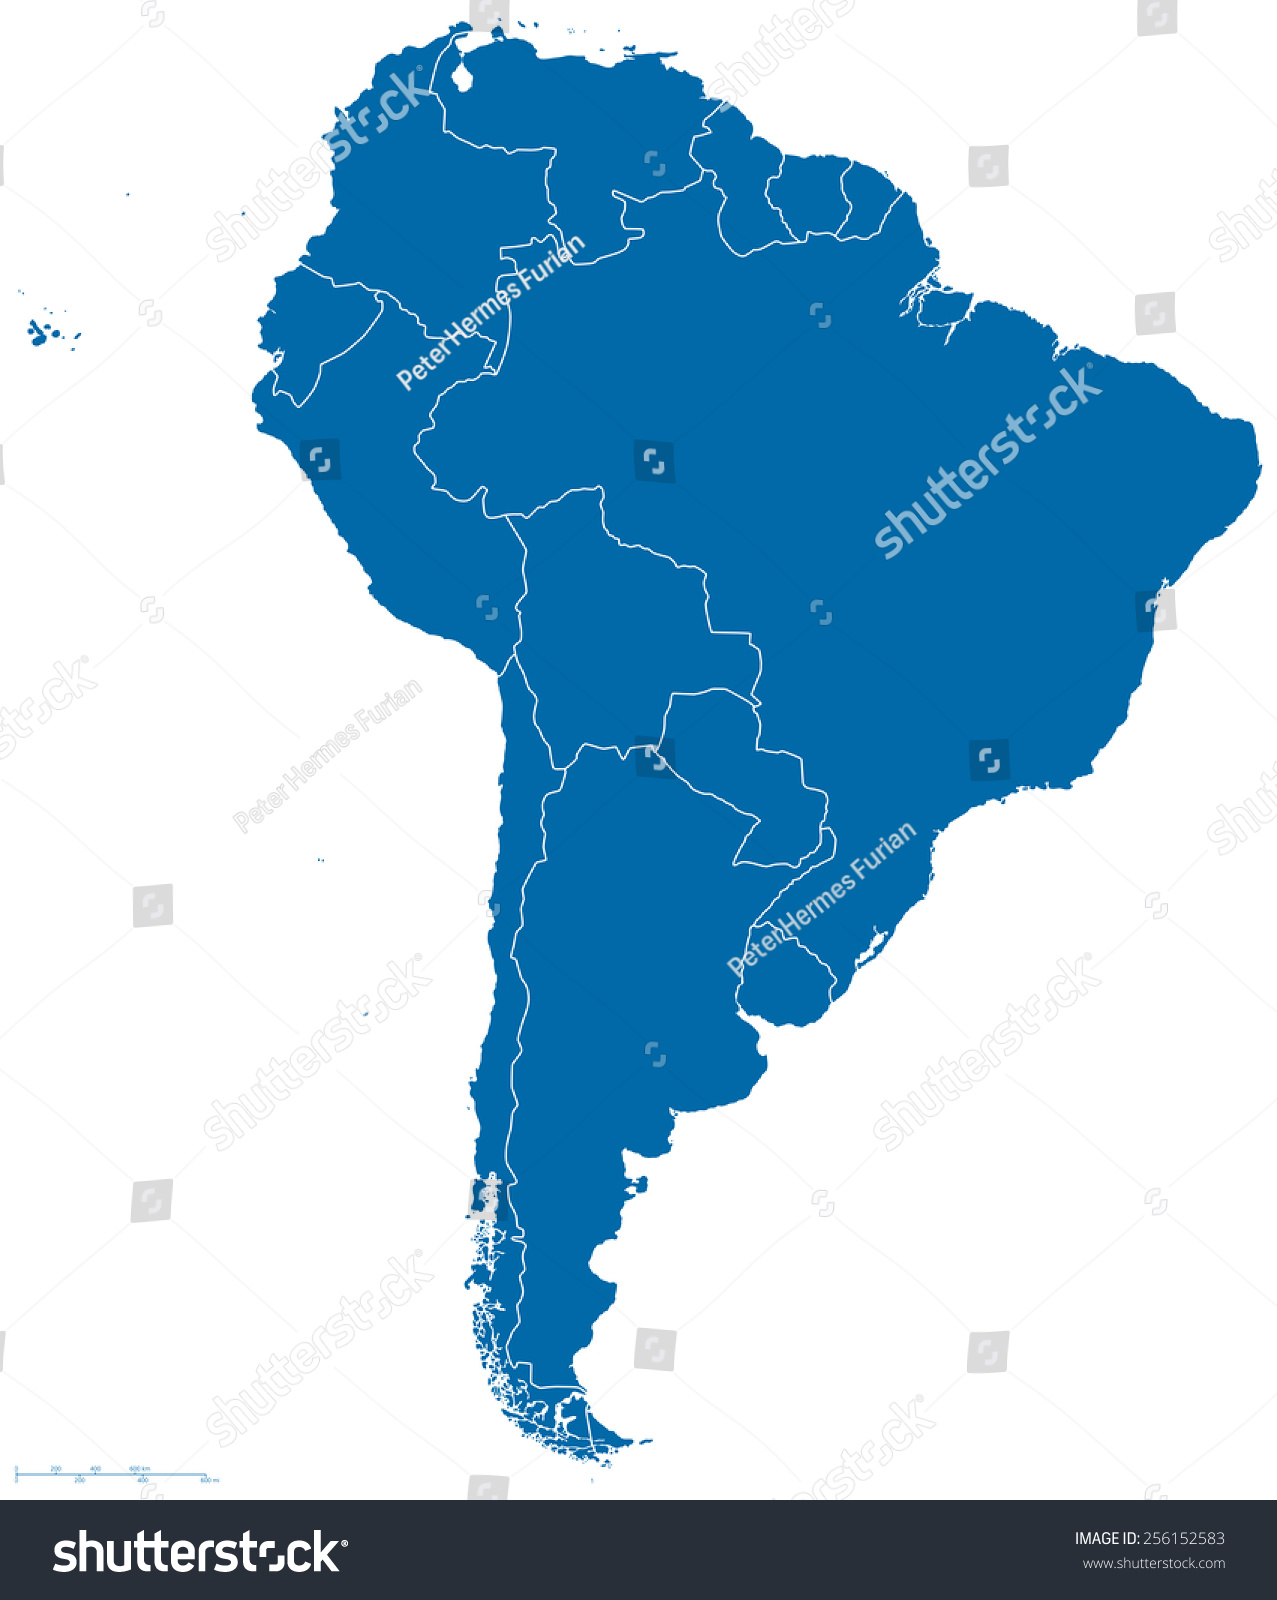 All America Map.Political Map South America All Countries Stock Vector Royalty Free